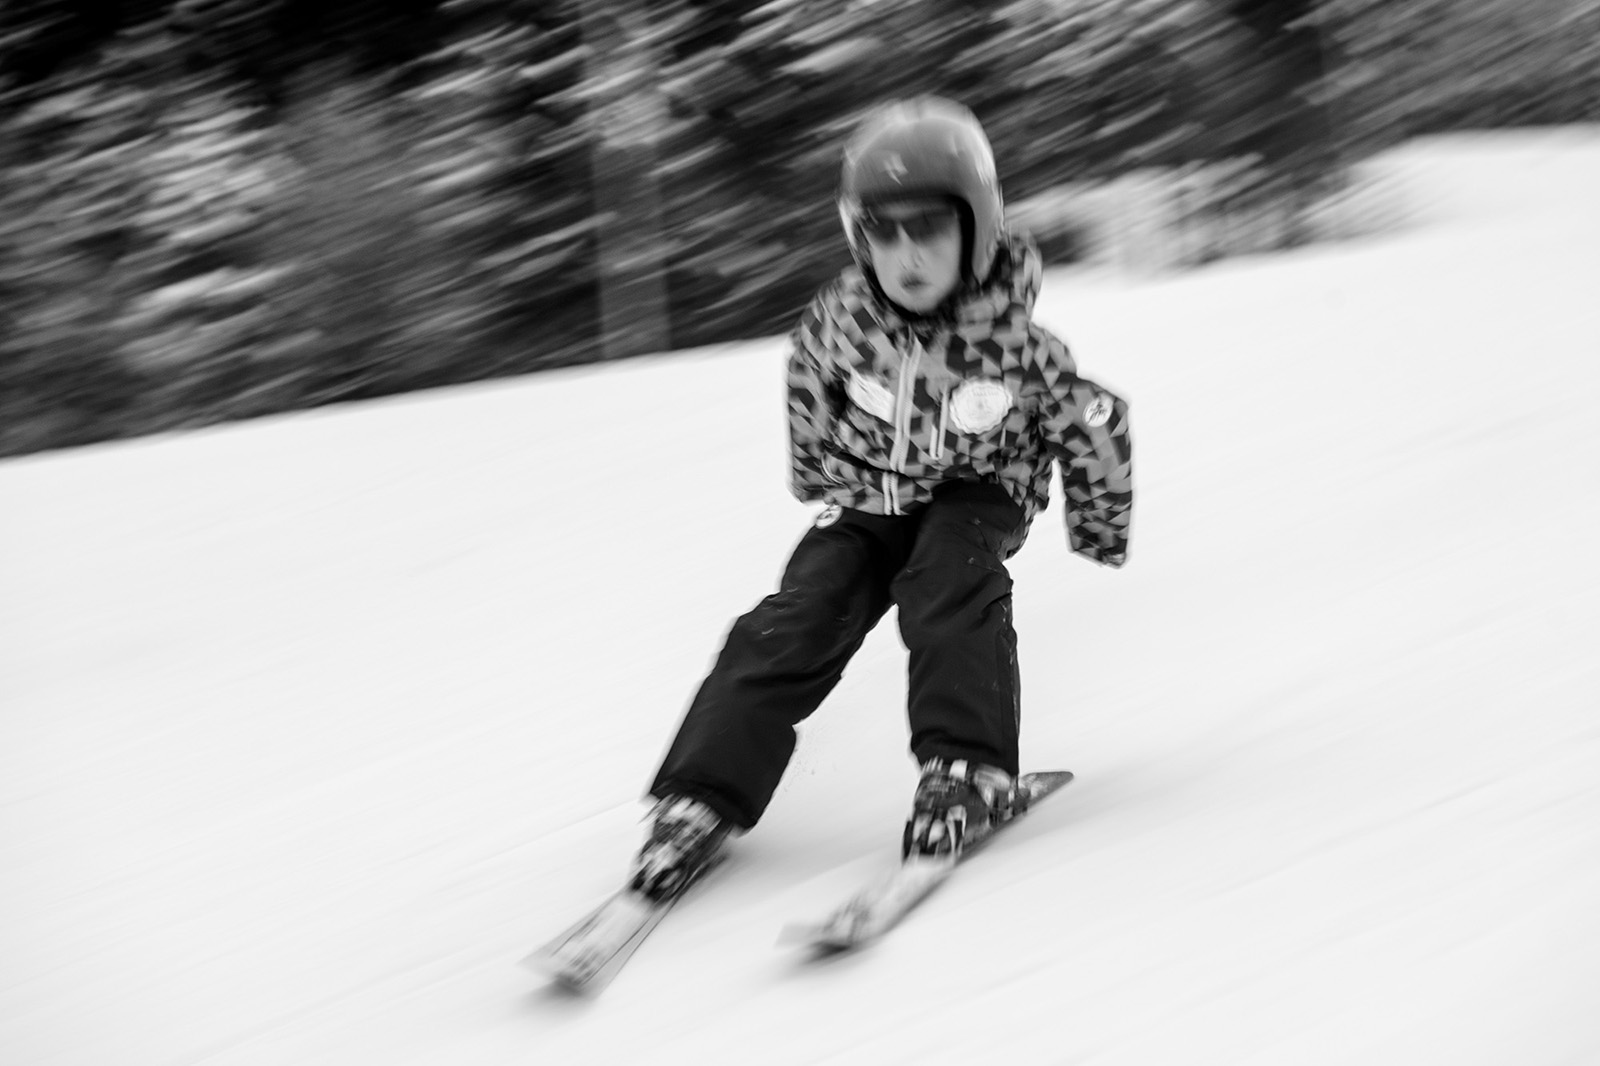 Ismail is skiing at the Olympic mountain Bjelasnica.